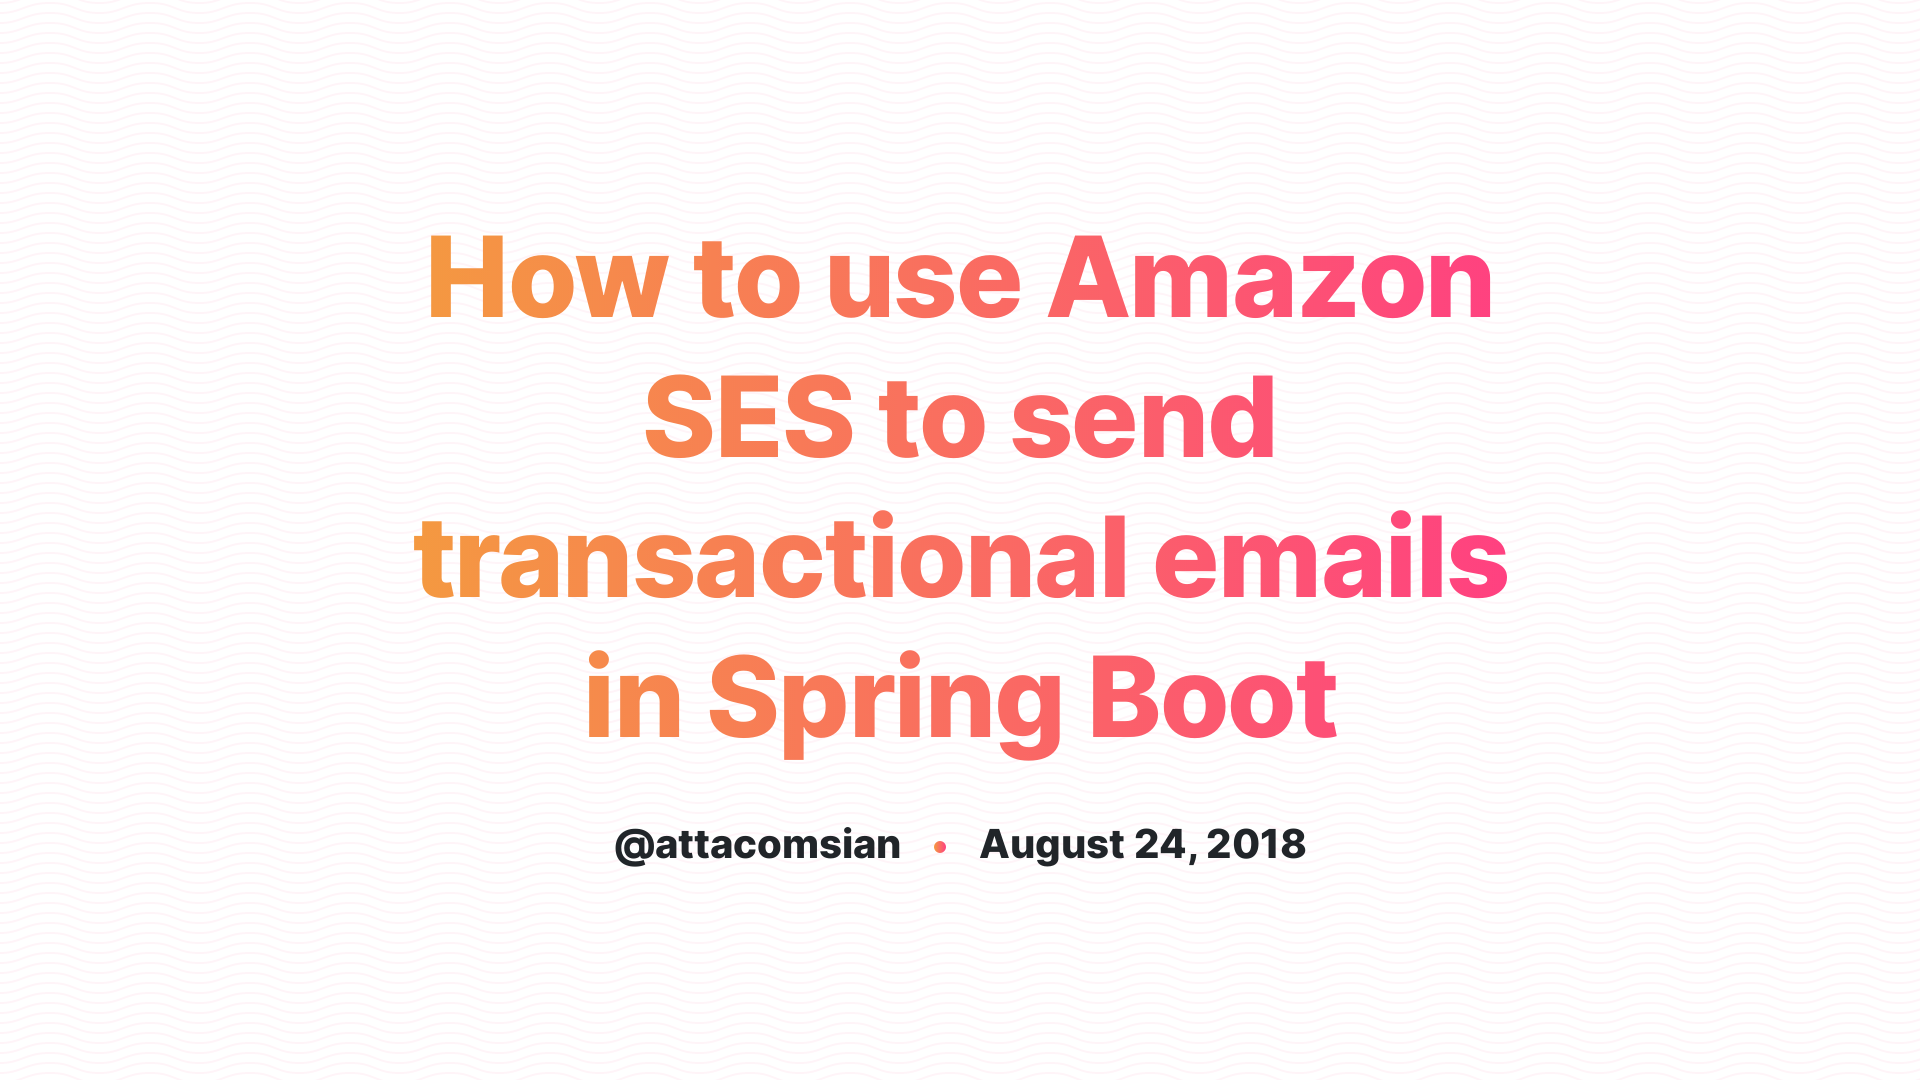 How to use Amazon SES to send transactional emails in